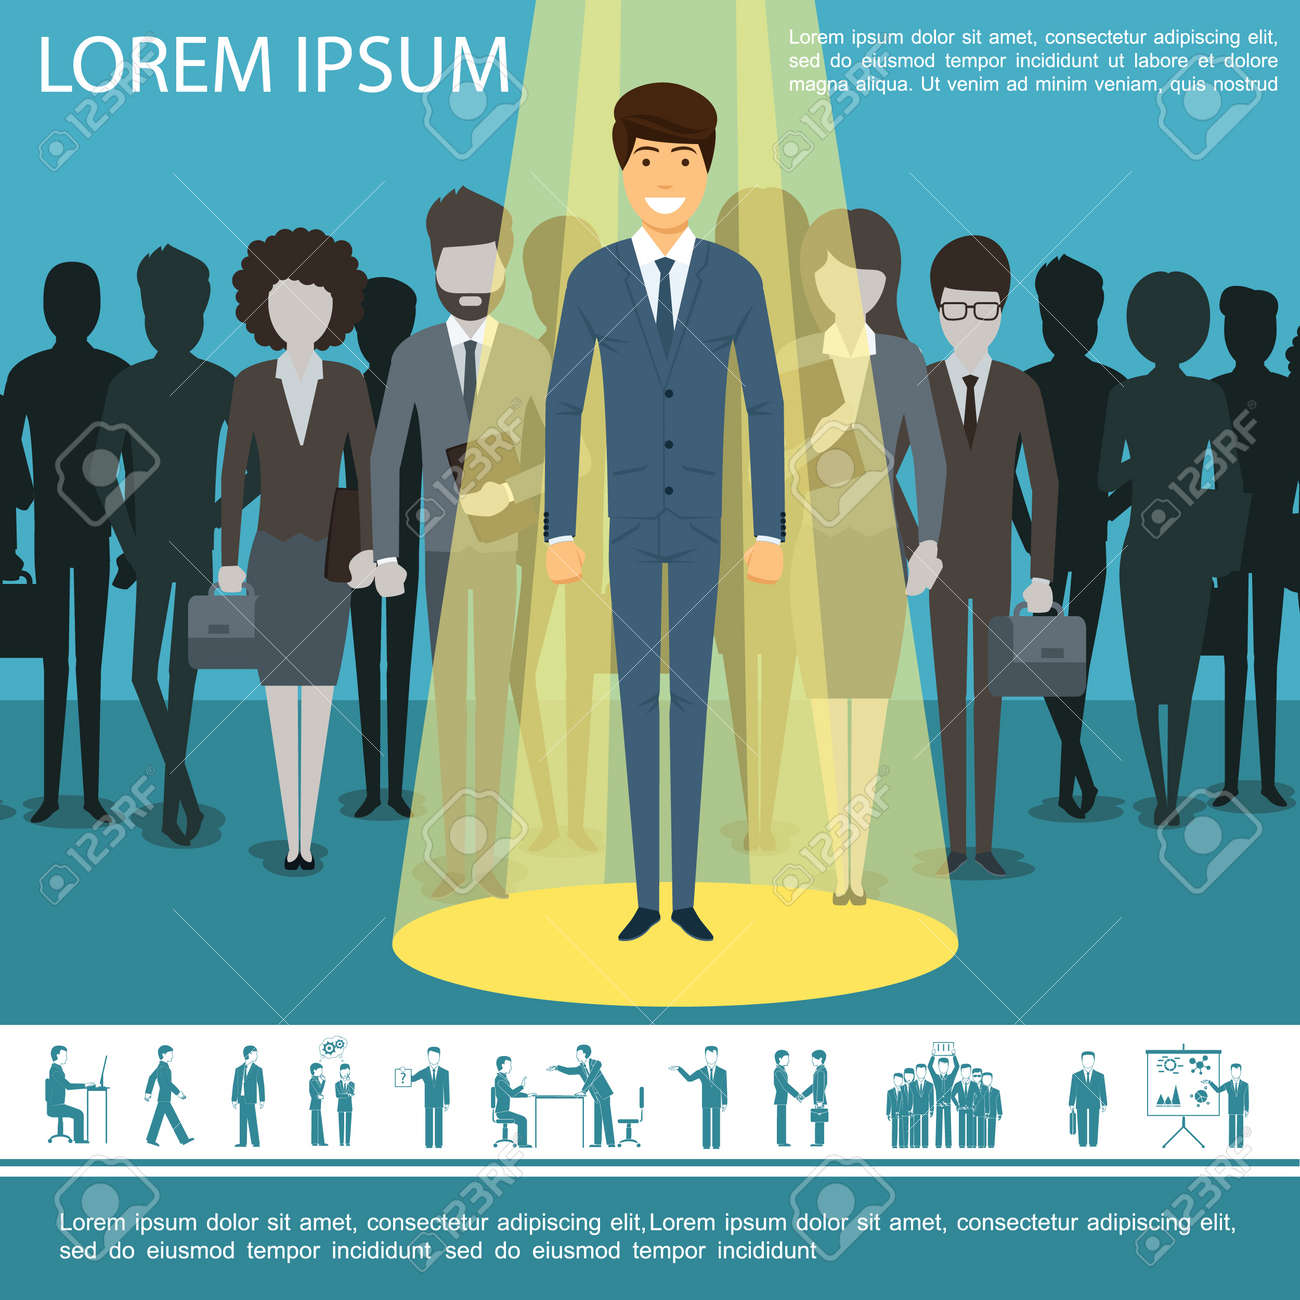 Flat business people template with group of entrepreneurs managers businesswomen and businessman icons vector illustration - 168389546